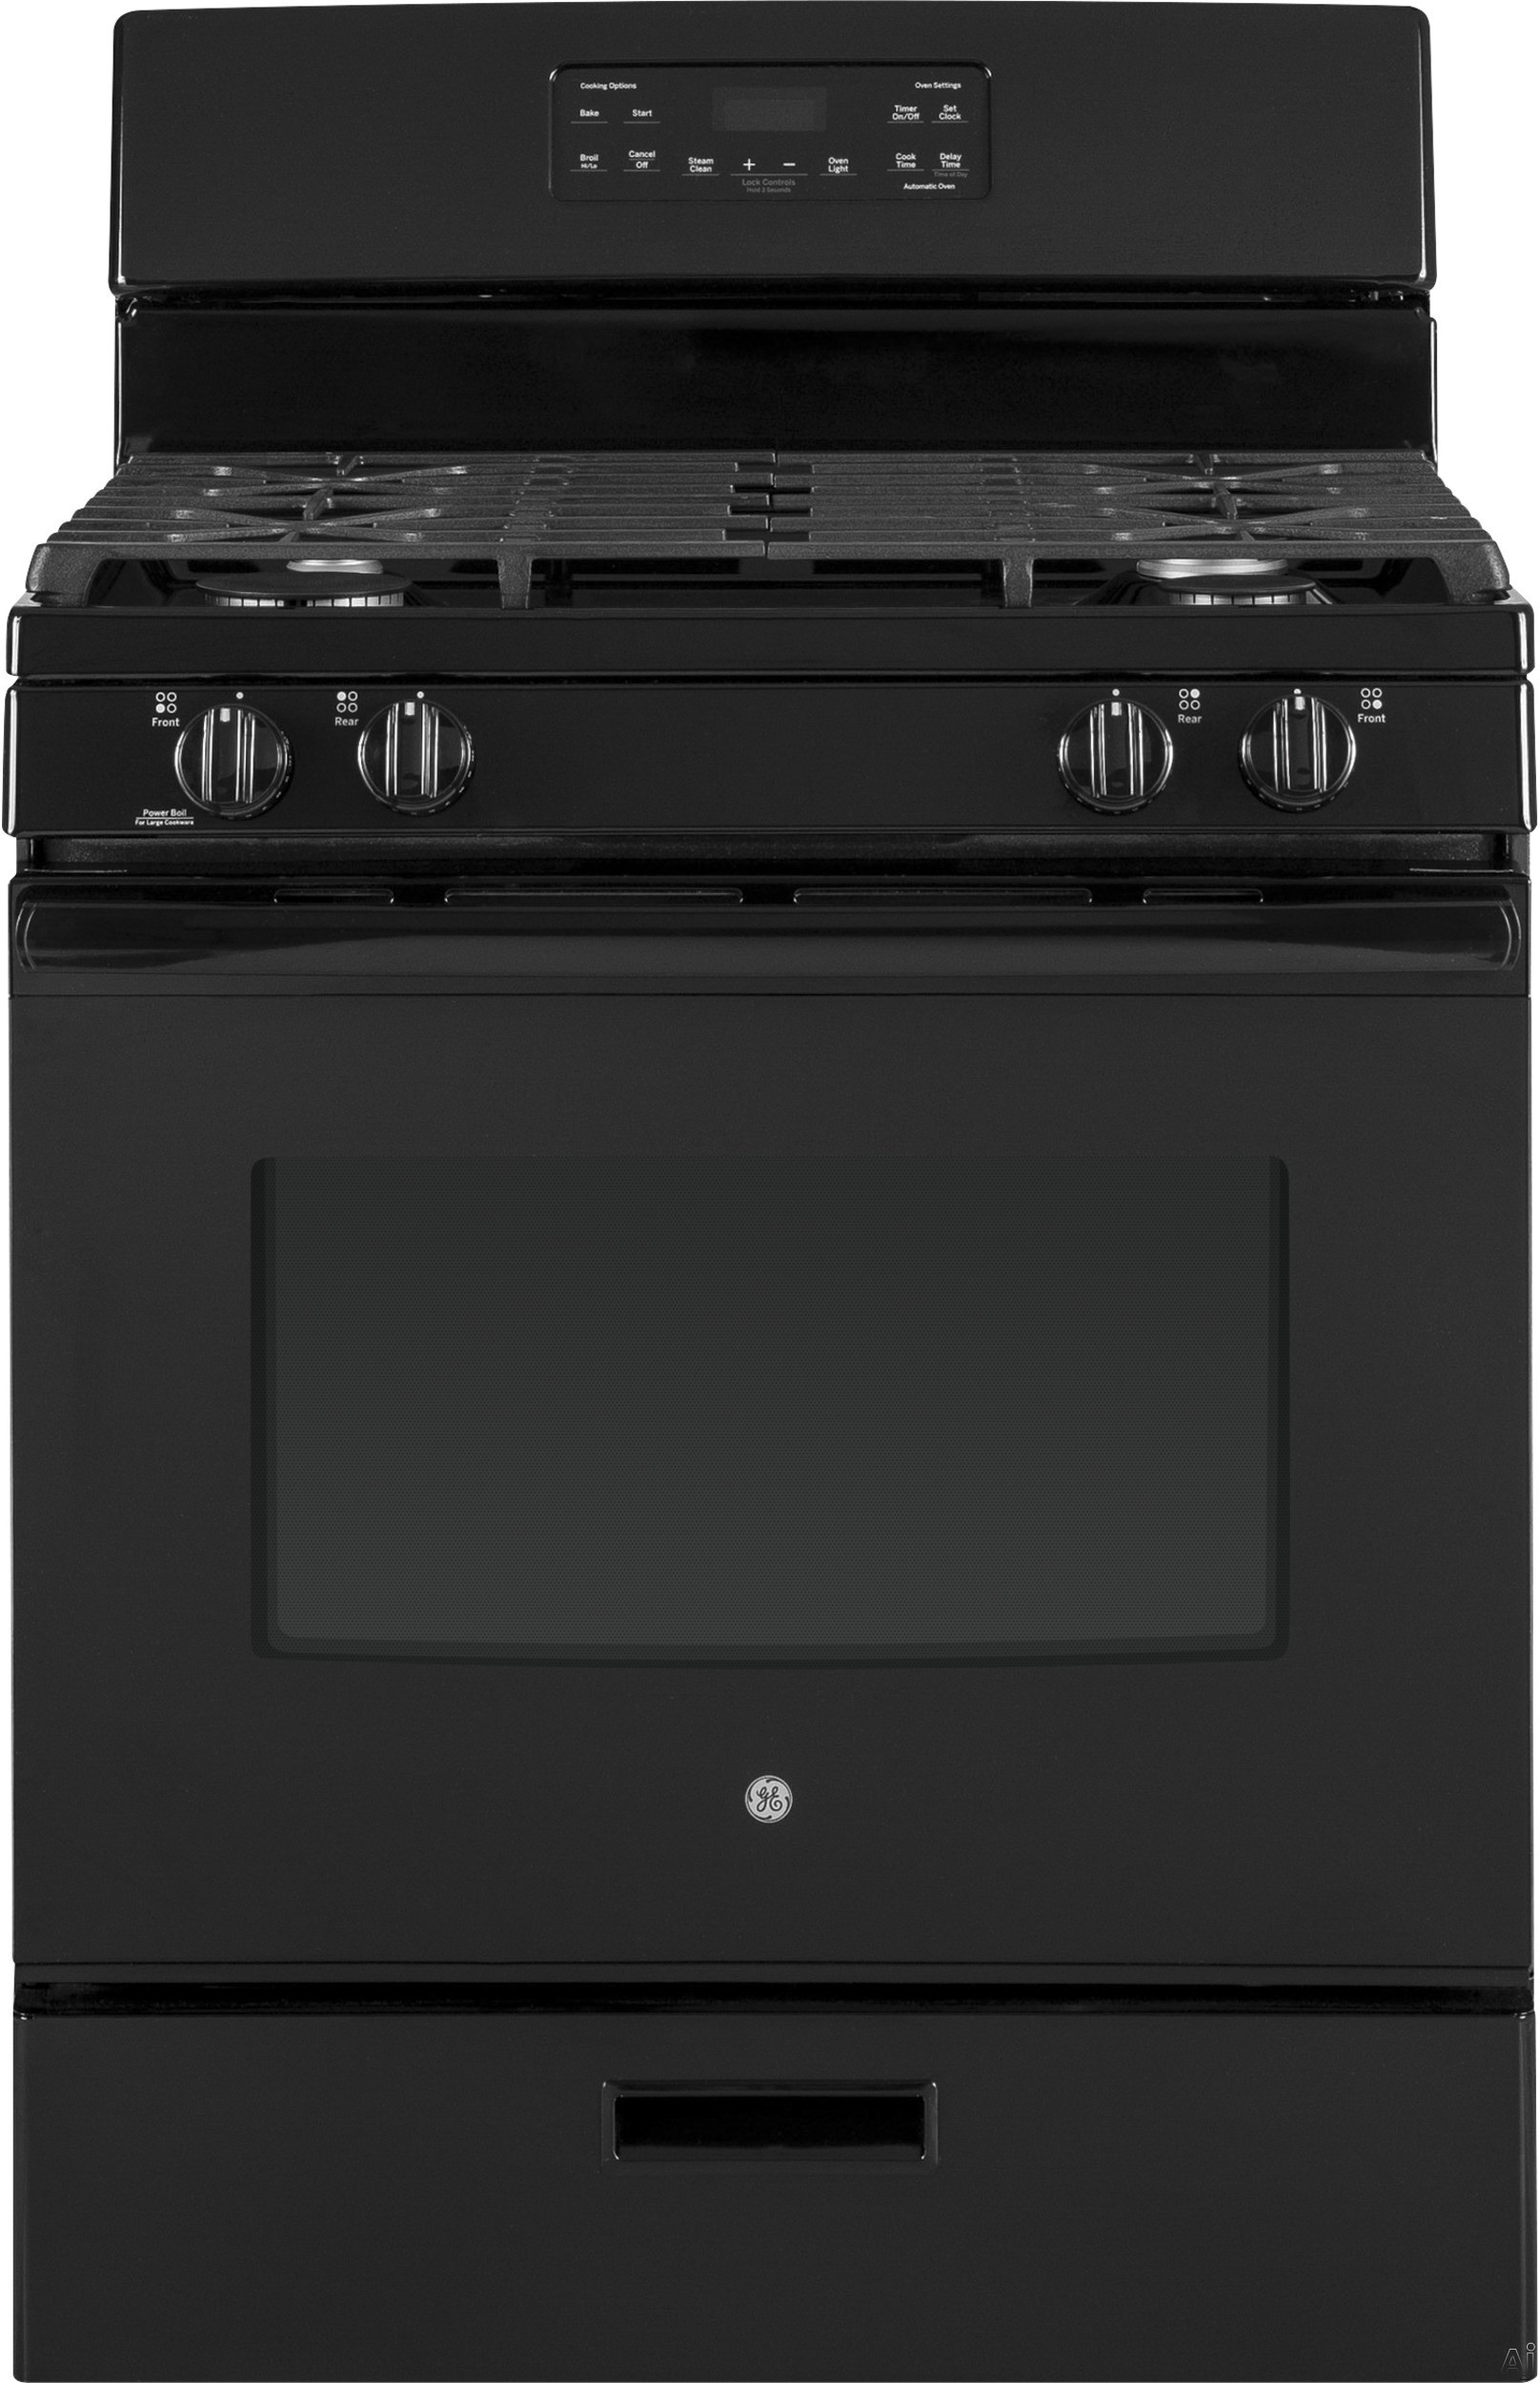 GE JGBS62DEKBB 30 Inch Freestanding Gas Range with Power Boil Burner, Simmer Burner, Steam Clean, Broiler Drawer, Continuous Grates, 4 Sealed Burners and 5 cu. ft. Capacity: Black